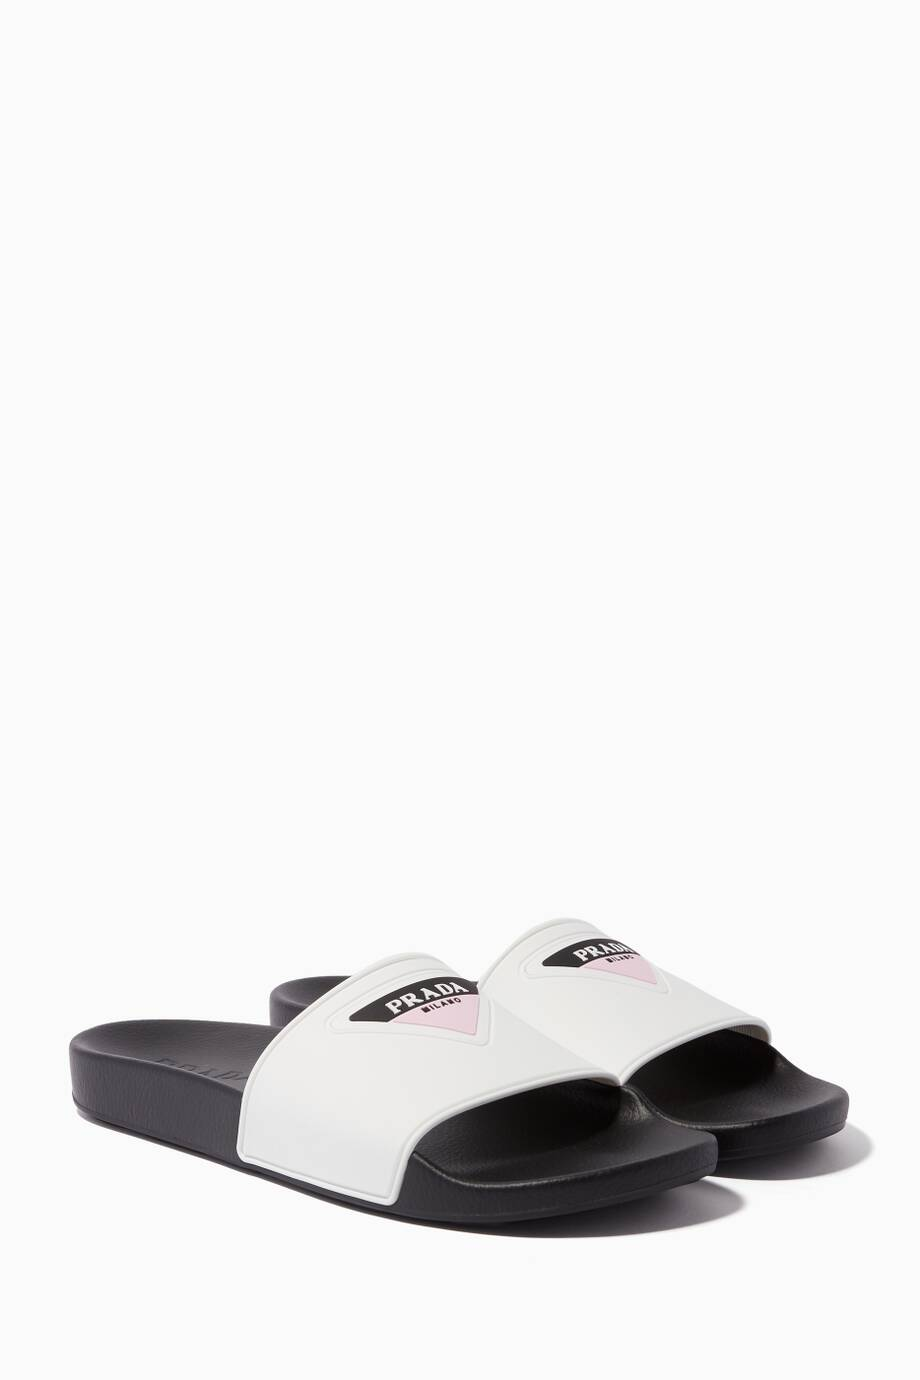 f526e035f79 Shop Luxury Prada White Logo Pool Slides